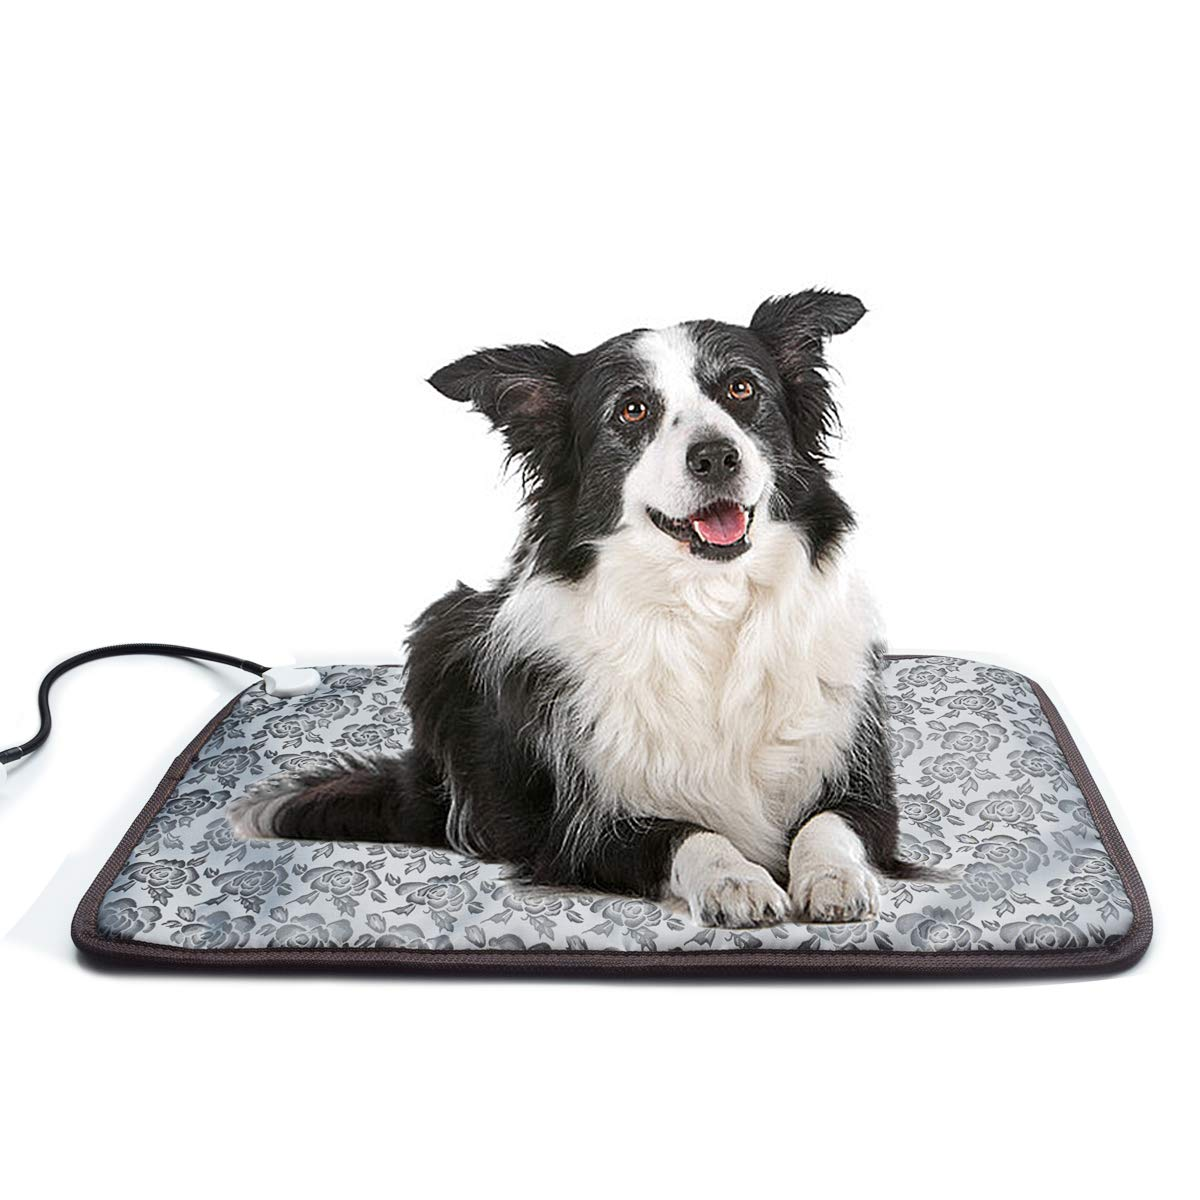 Grey 2819inch Grey 2819inch Pet Heating Pad Cat Heating Mat Waterproof Pets Heated Bed Adjustable Dog Bed Warmer Electric Heating Mat Chew Resistant Steel Cord (17.7x17.7 Flower)